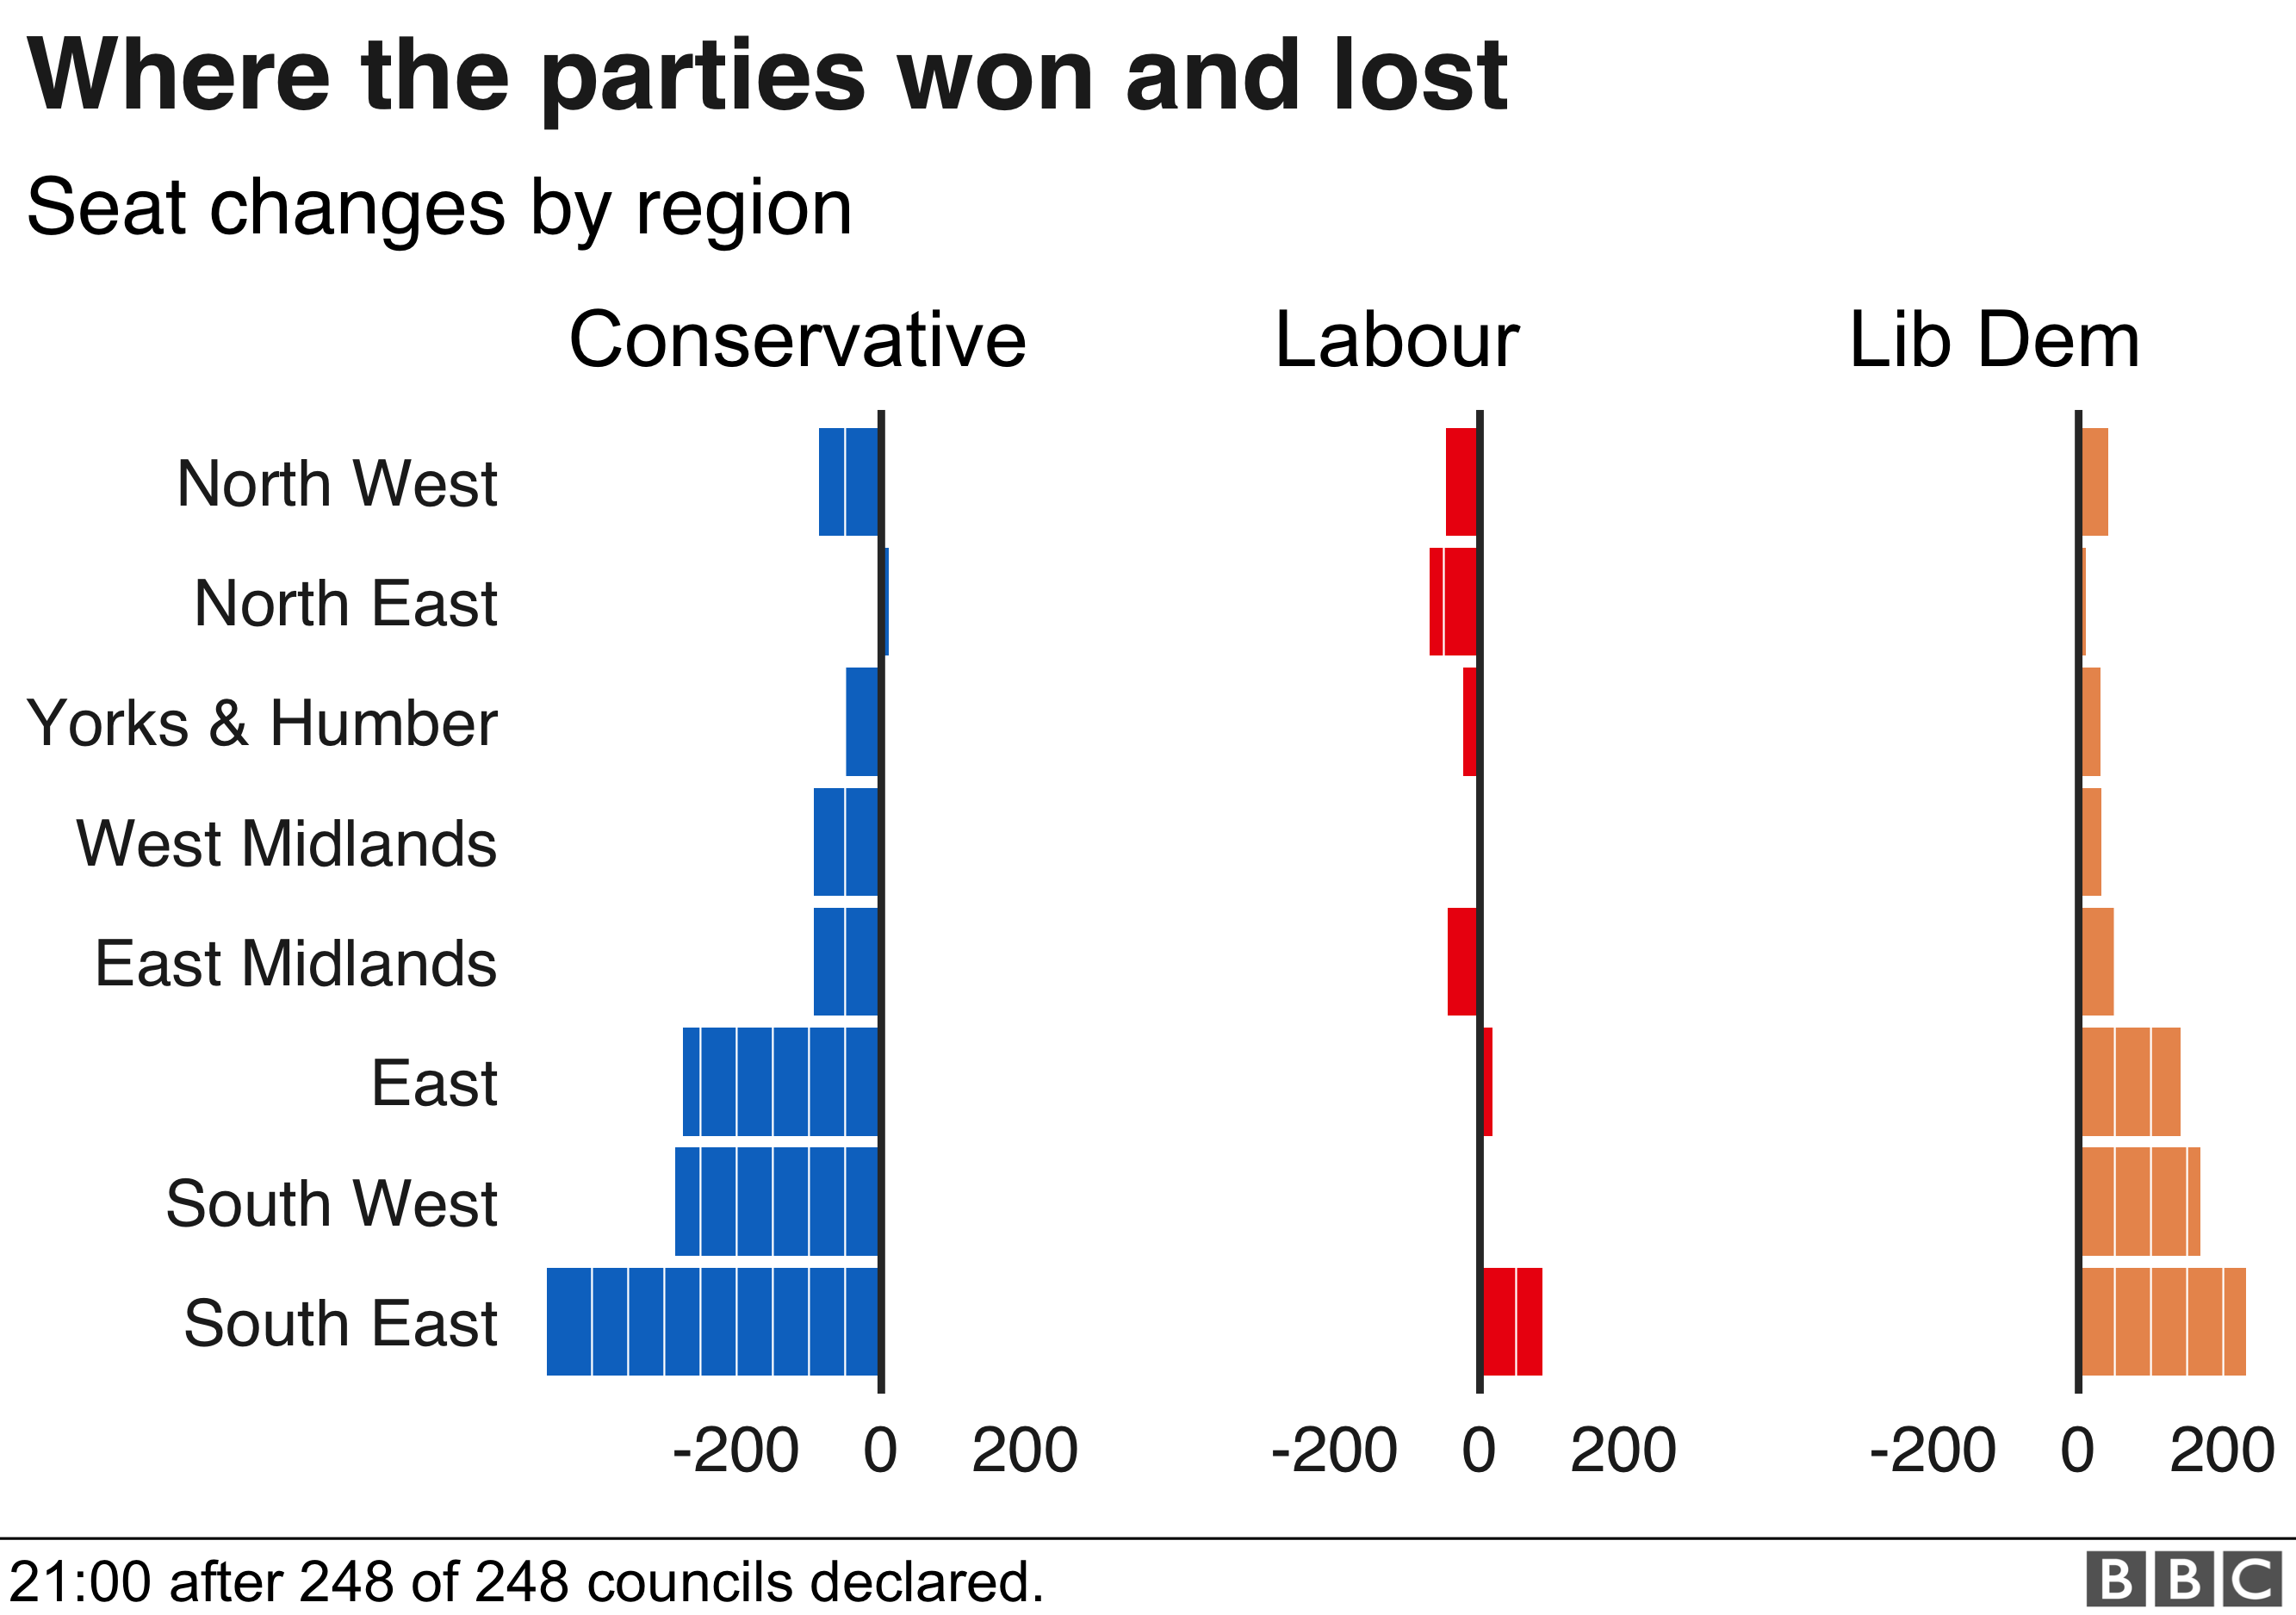 Tories did worst in the East, South East, and South West, areas where the Lib Dems perfromed best